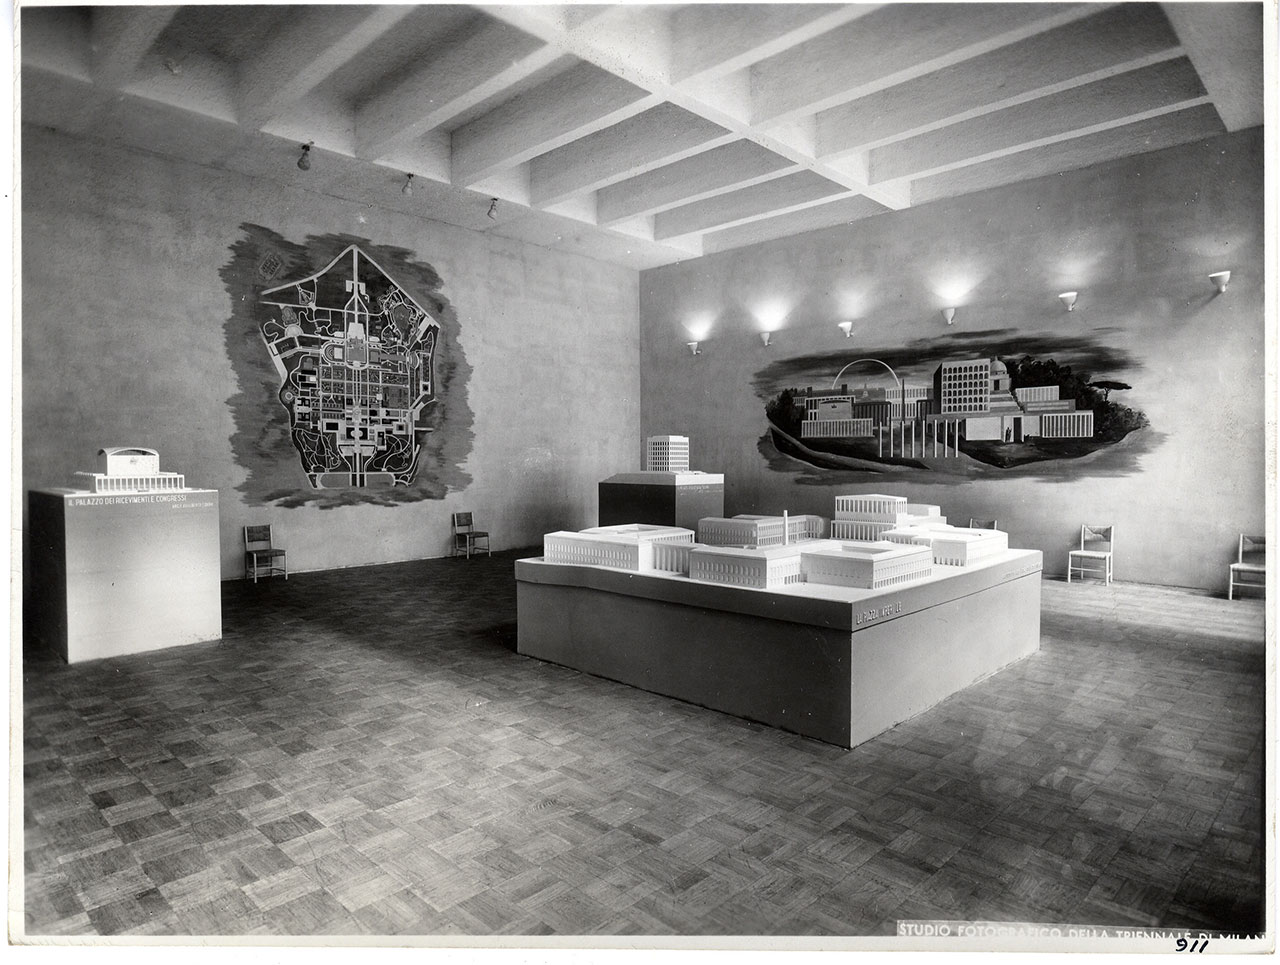 Architectural models for the Esposizione internazionale di Roma, exhibit at the VII Triennale di Milano, 1940. Section 1: The E42, Olimpiade della civiltà, in the architecture exhibition. Photographic Archive © La Triennale di Milano Foto Crimella.